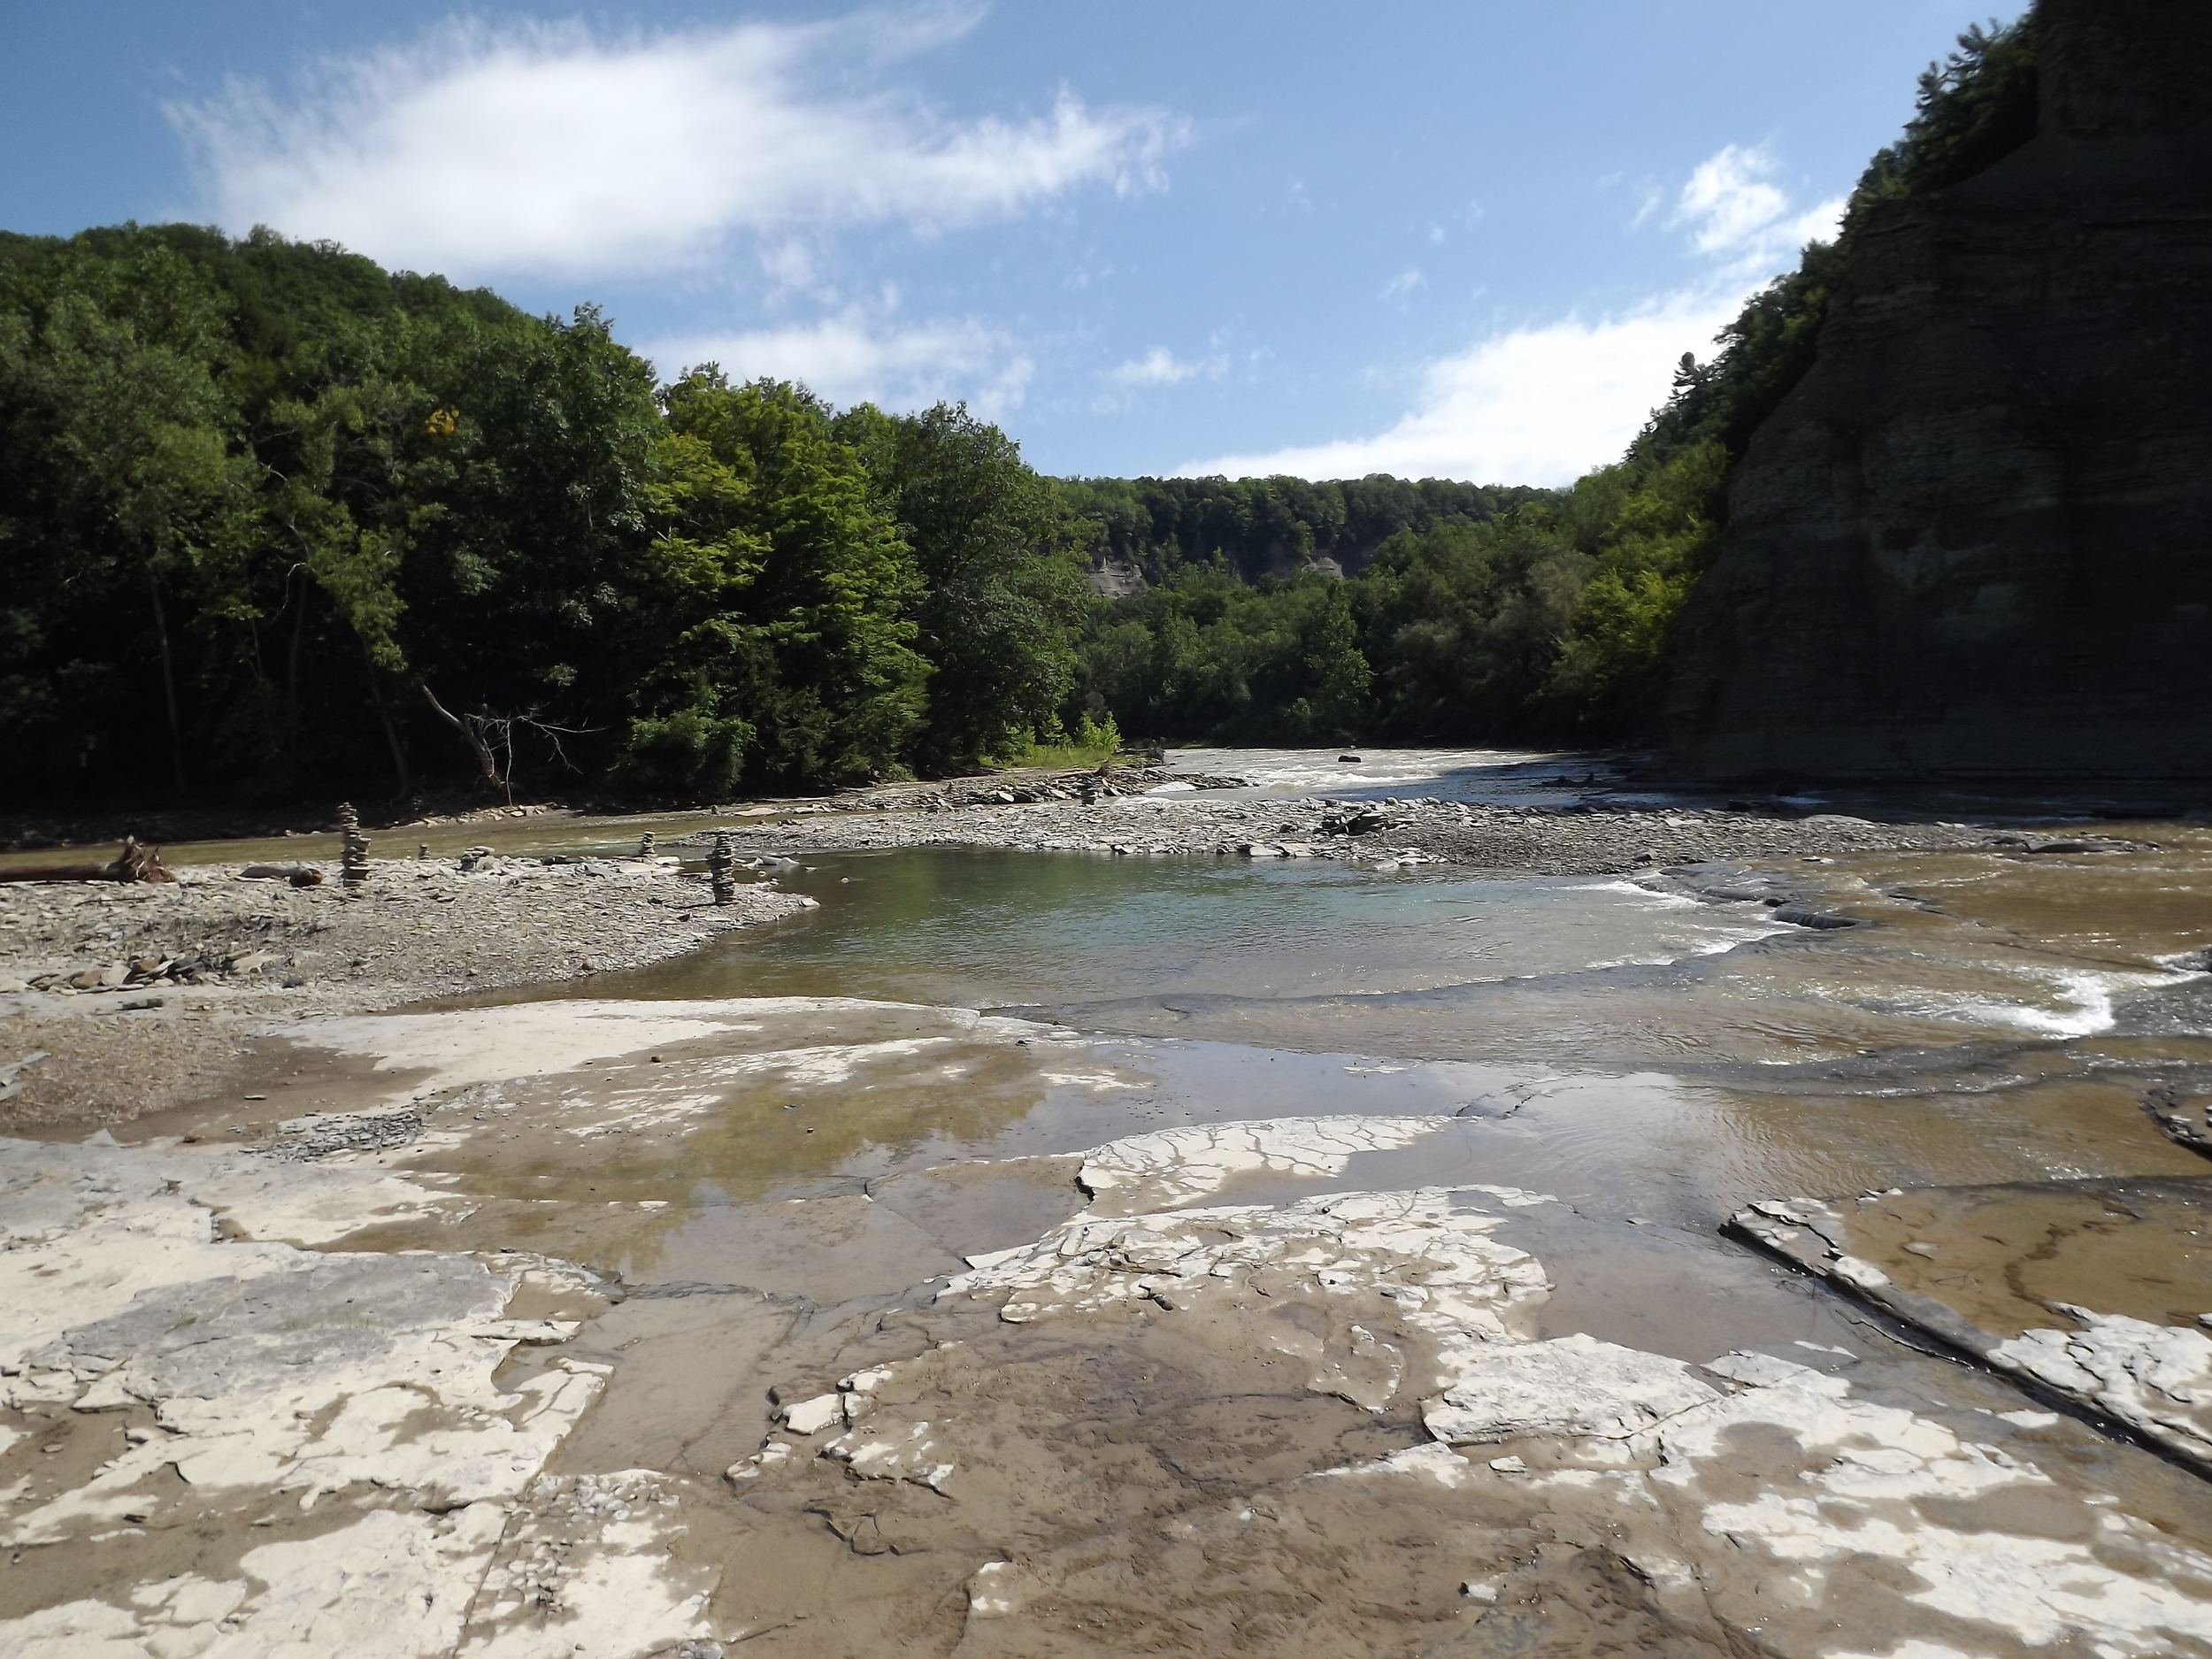 Confluence -  The confluence of the smaller South Branch and larger Main Branch of the Cattaraugus.  The day we were there, people had set up several rock cairns on a small island above the rapids.